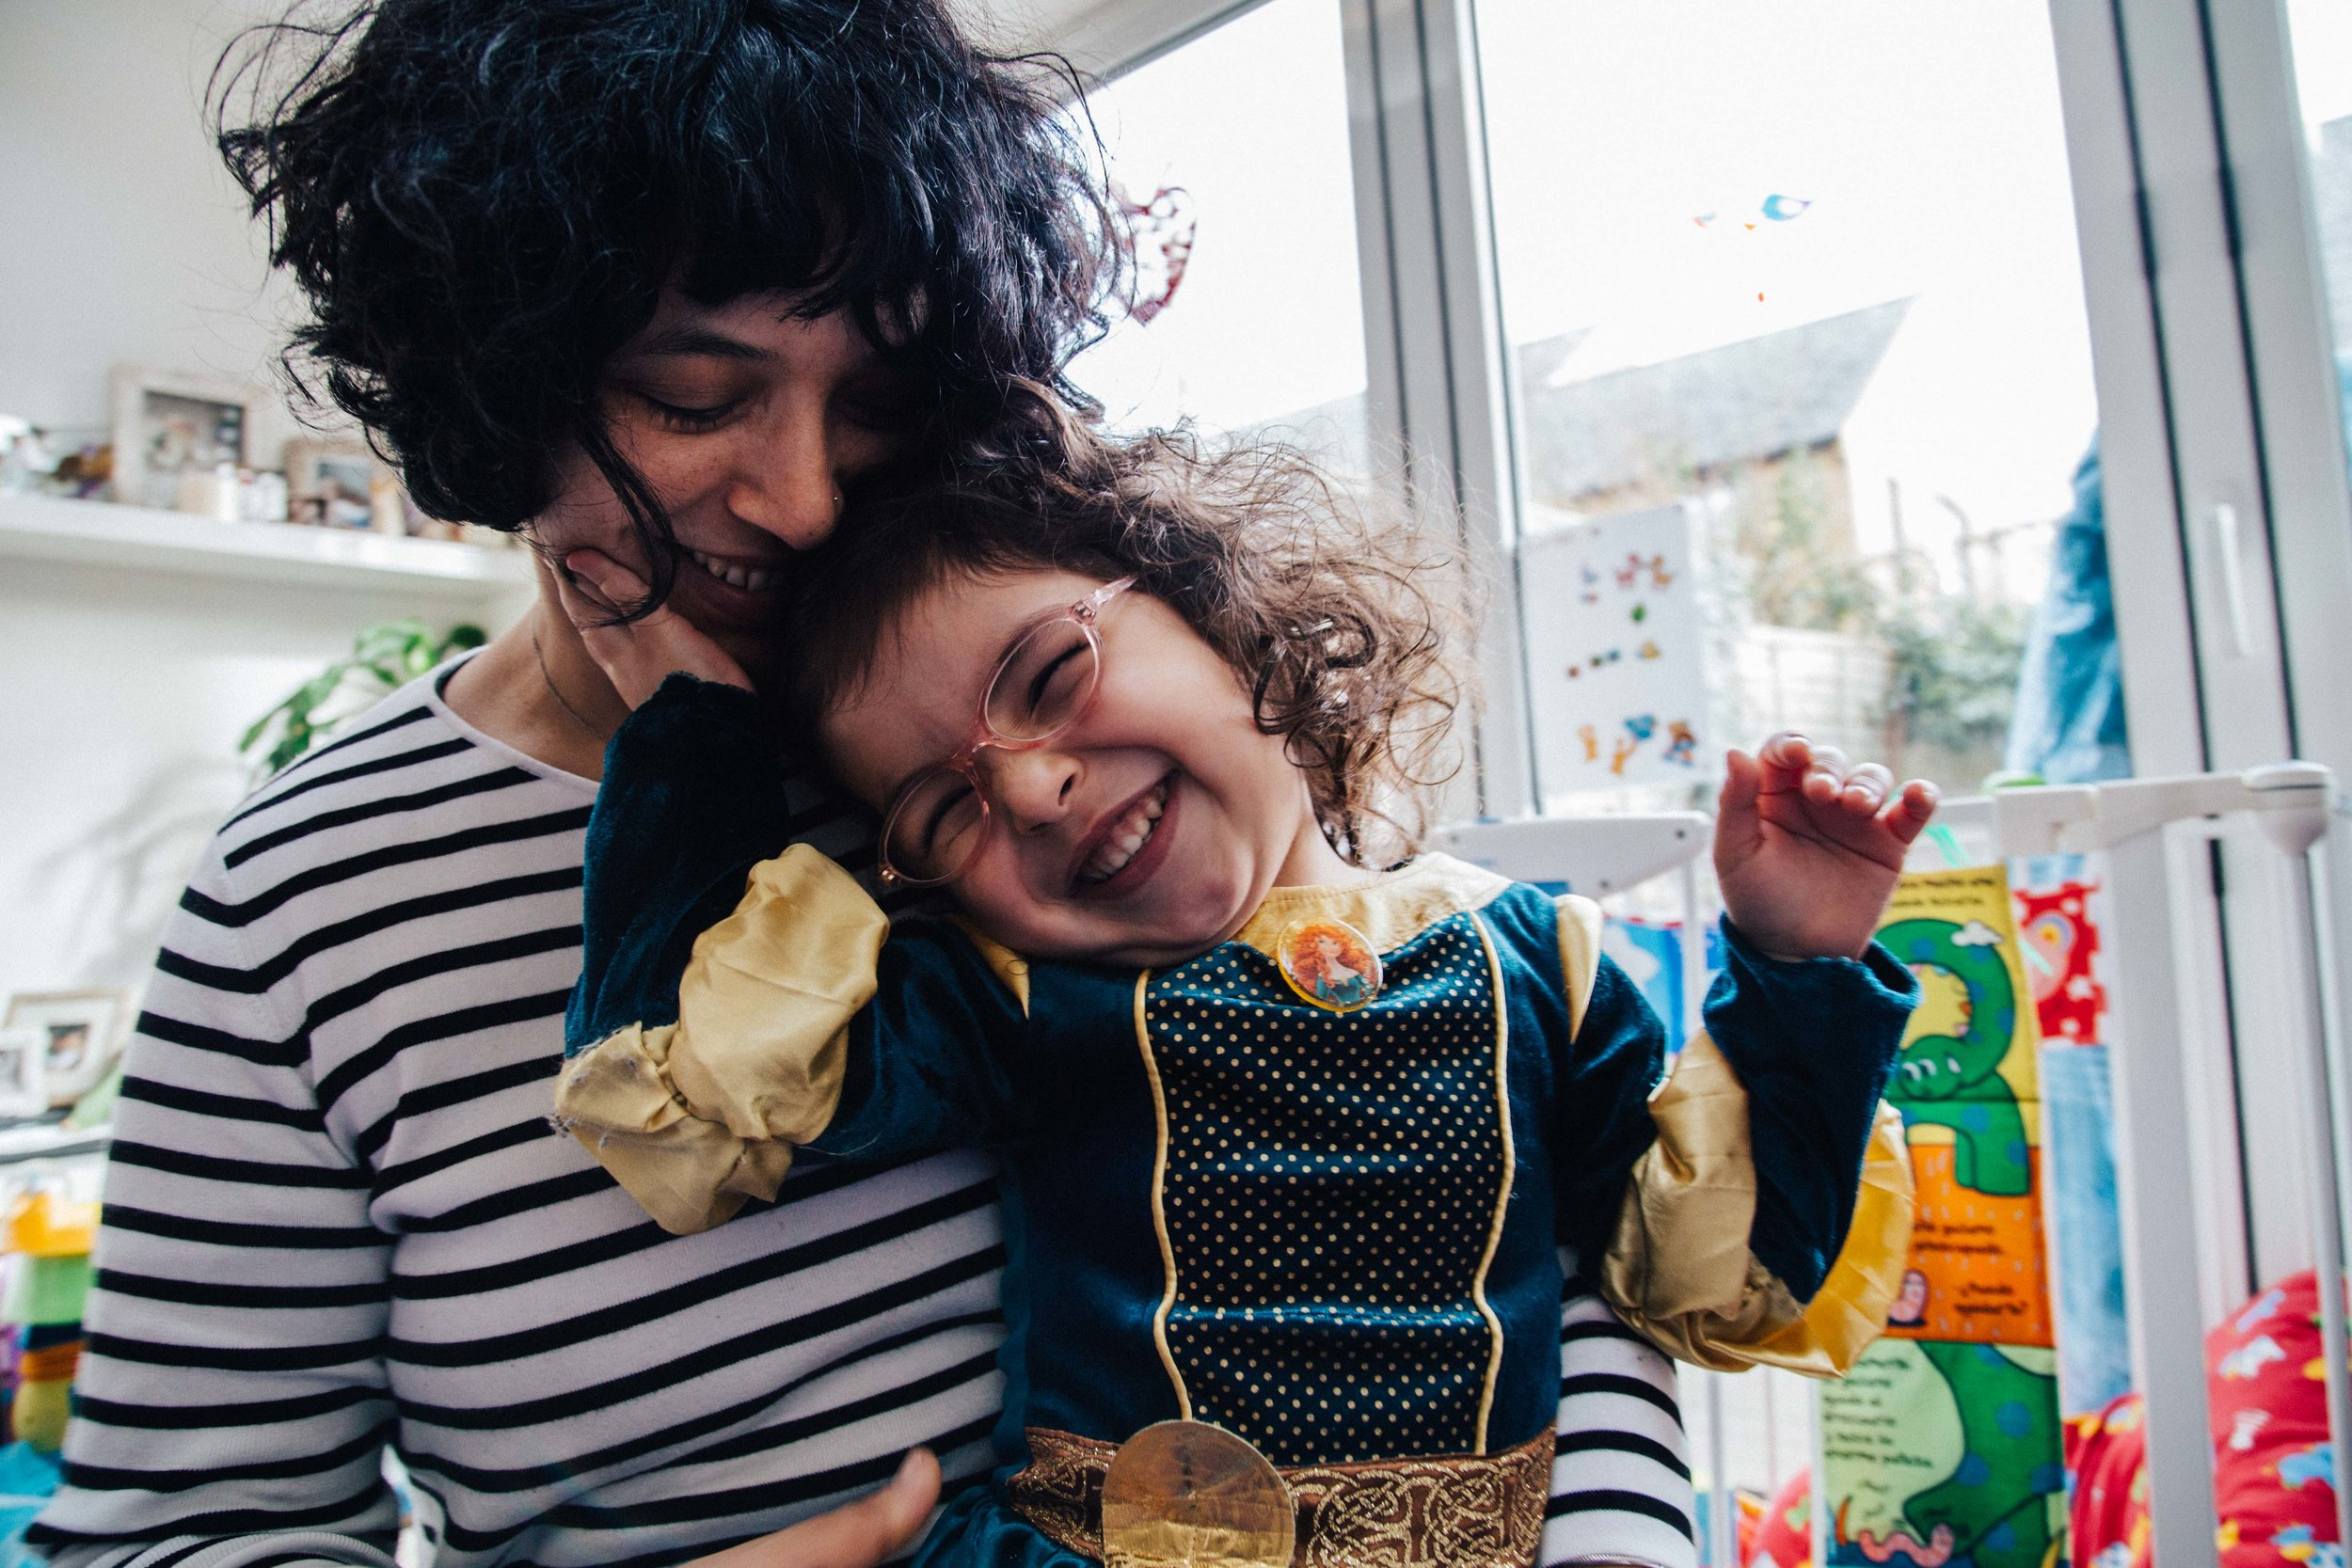 Mum holding little girl and smiling during family photo session in London